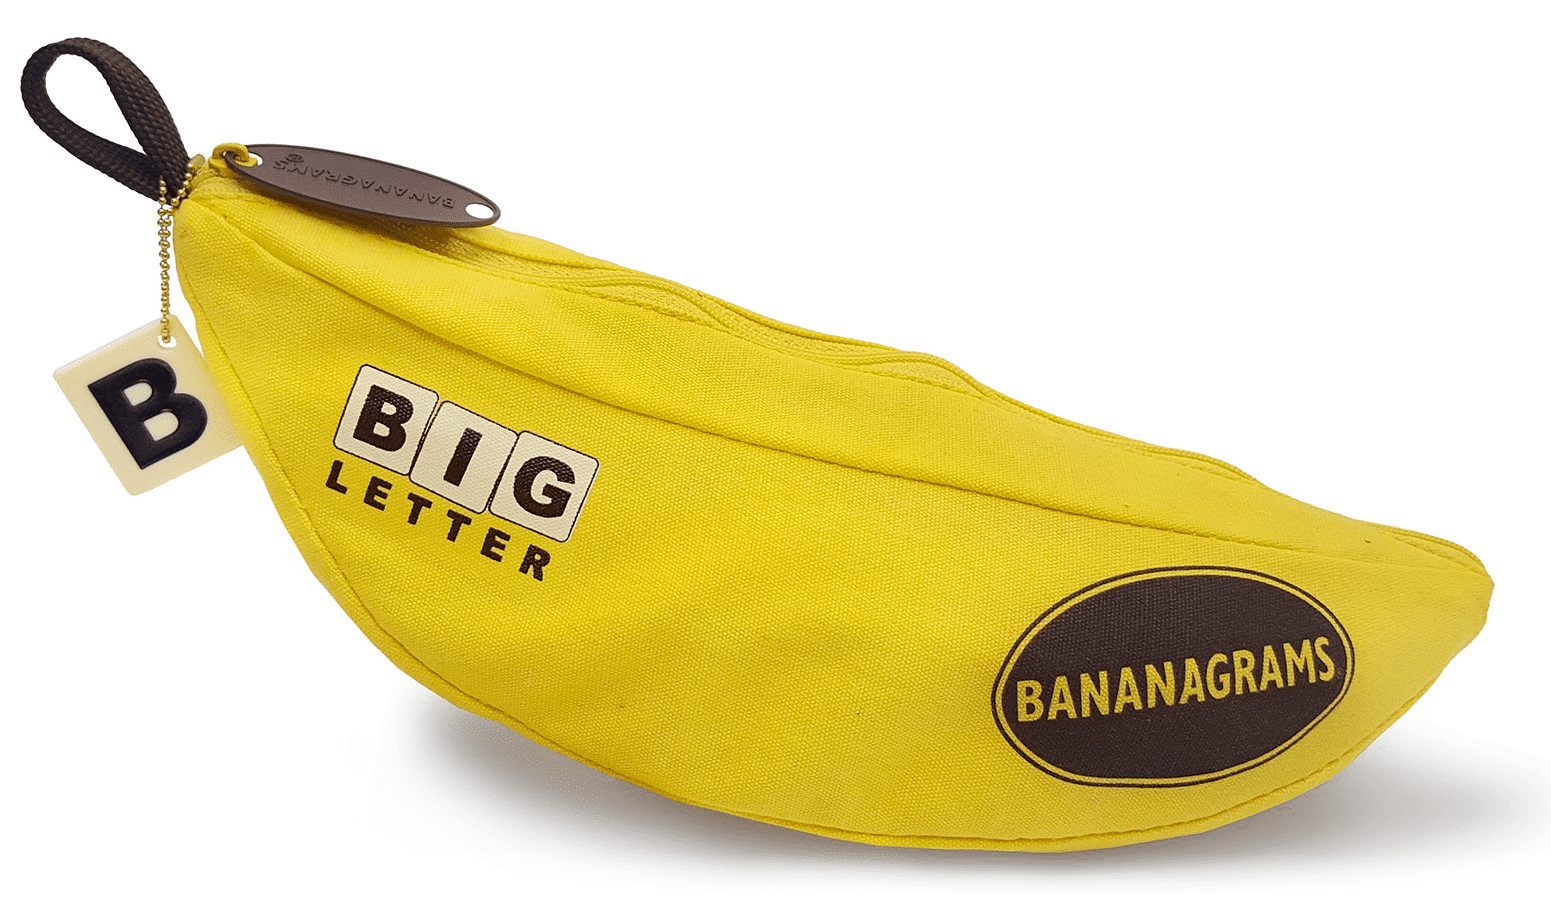 Big Letter Bananagrams